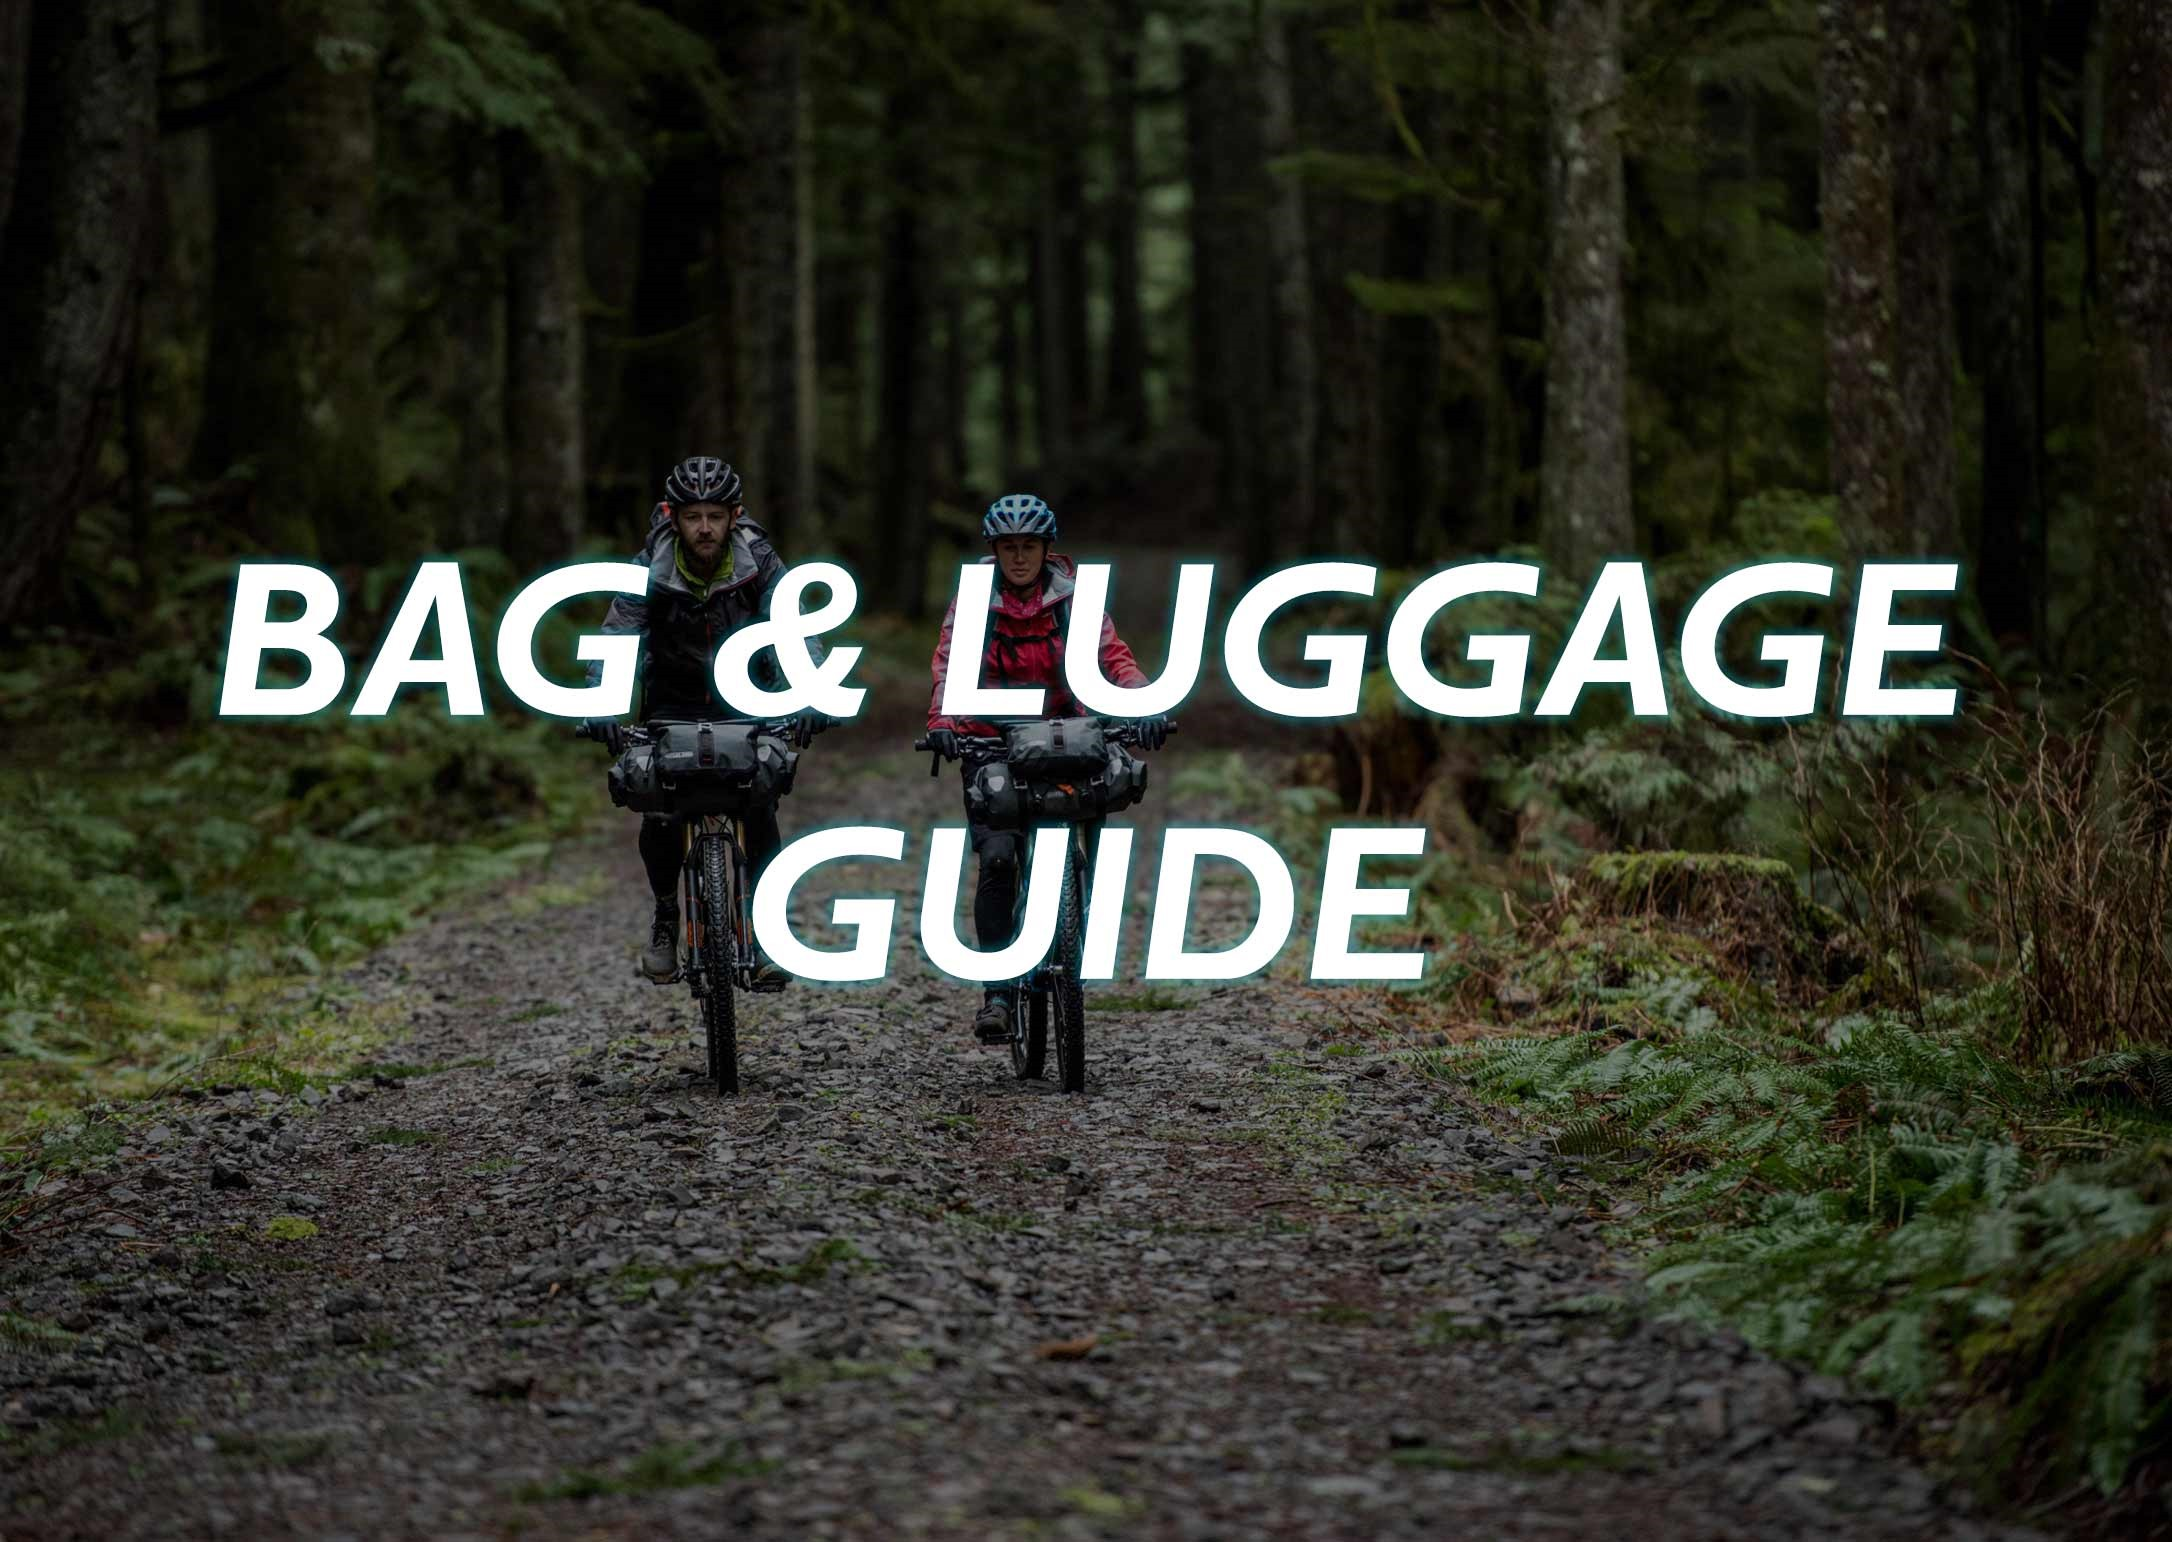 bag-and-luggage-guide-tile